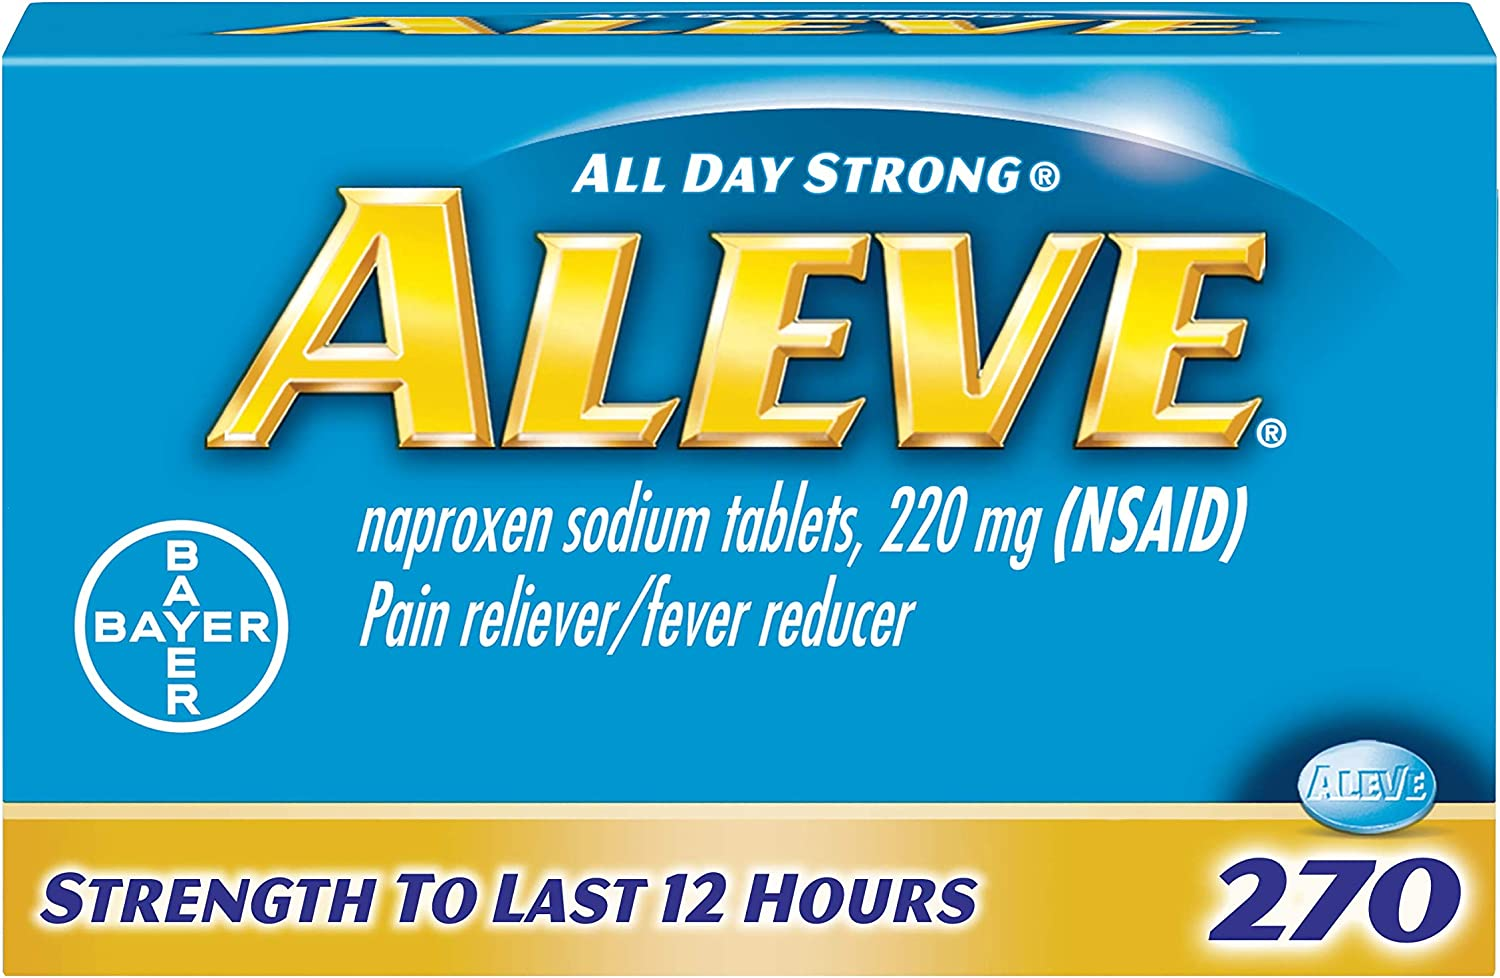 Aleve Tablets, Fast Acting All Day Pain Relief for Headaches, Muscle Aches, and Fever Reduction, Naproxen Sodium Capsules, 220 mg, 270 Count: Health & Personal Care